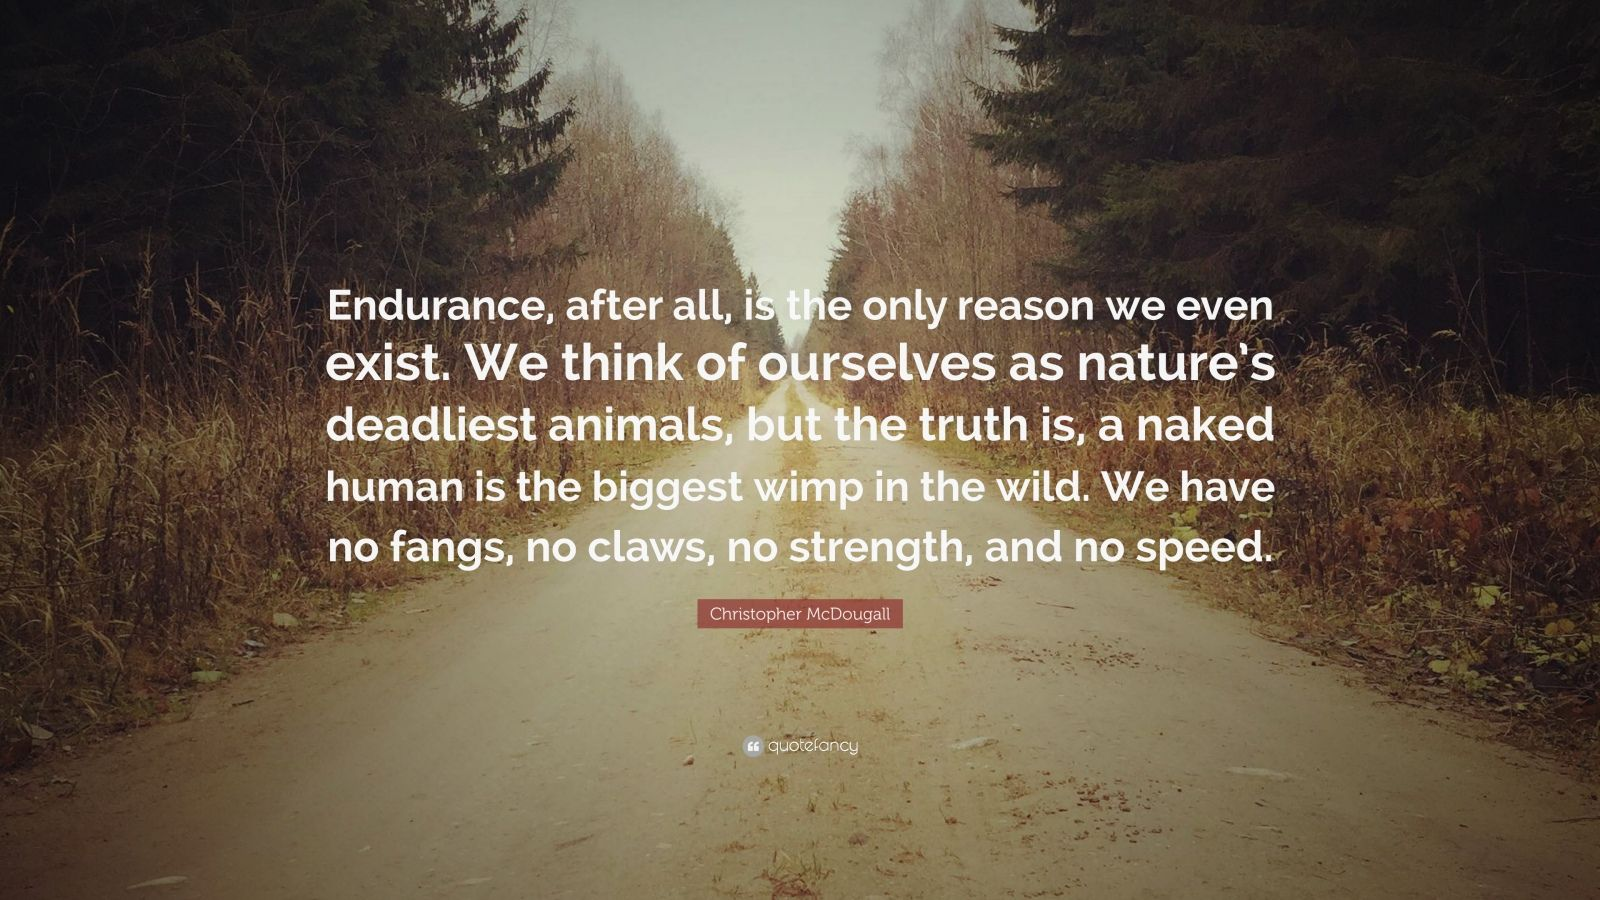 """Christopher McDougall Quote: """"Endurance, after all, is the only reason we even exist. We think of ourselves as nature's deadliest animals, but the truth is, a naked human is the biggest wimp in the wild. We have no fangs, no claws, no strength, and no speed."""""""